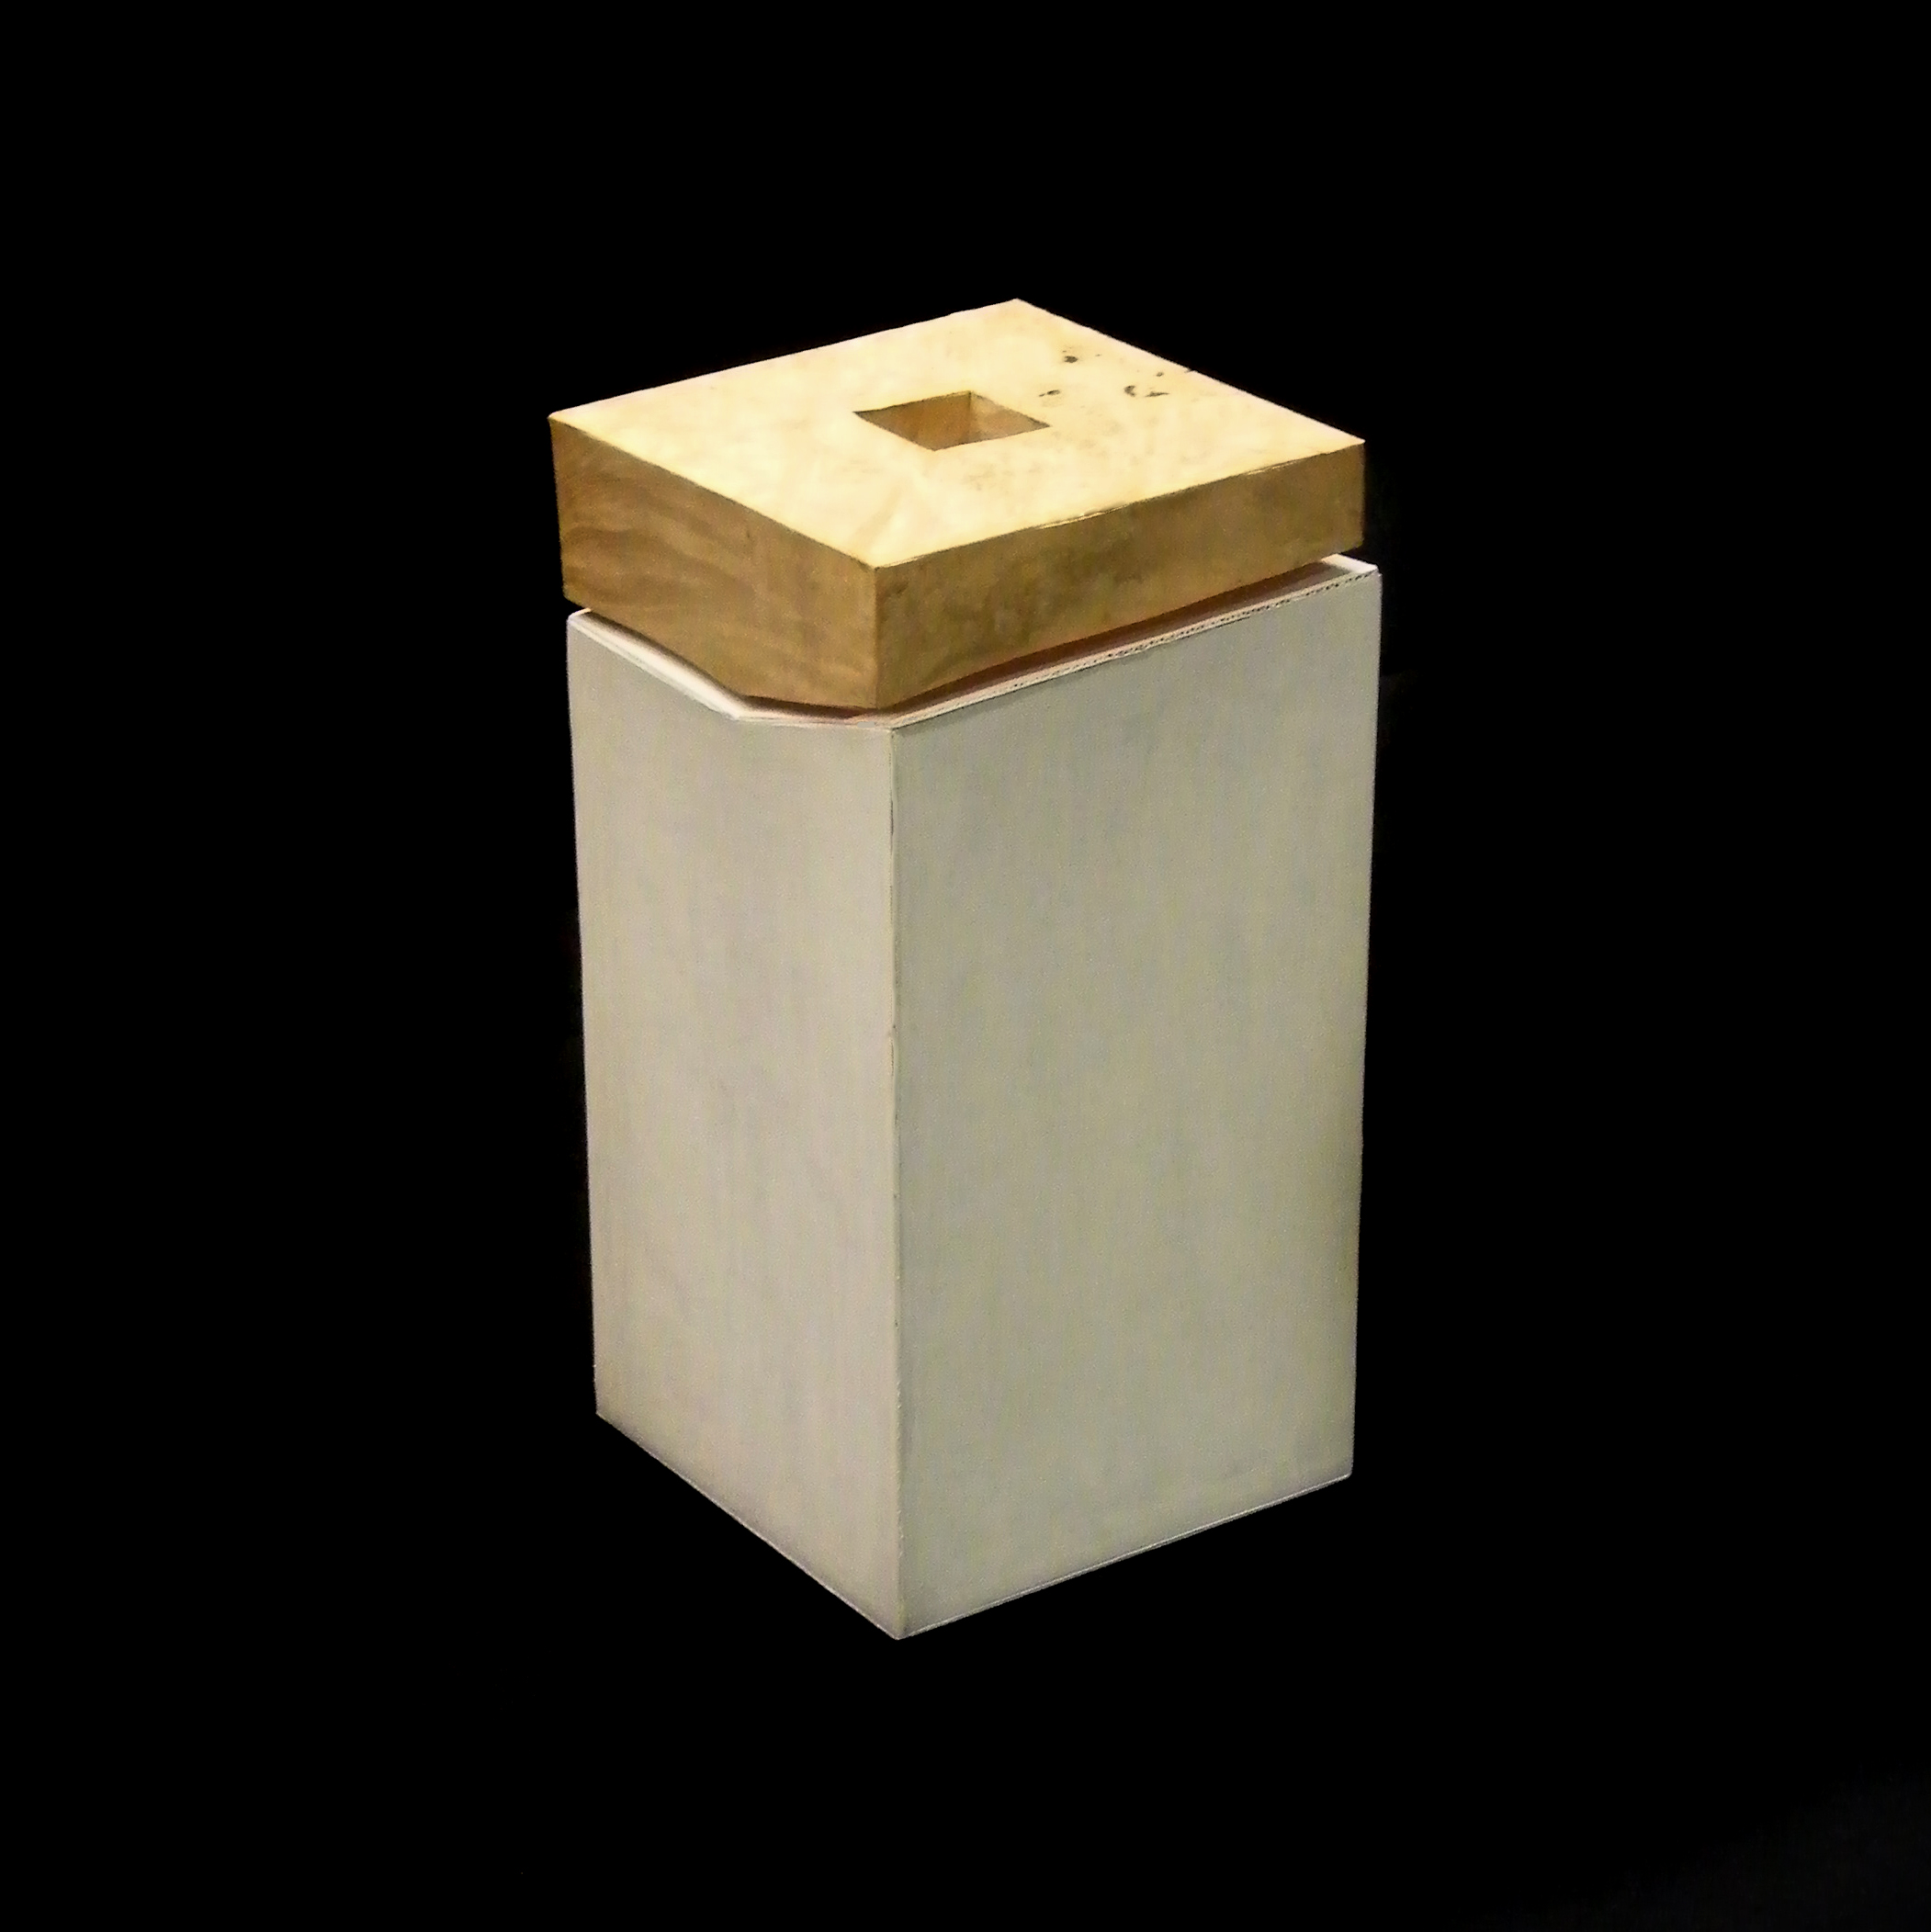 Earthen Vessel: Model. Cardboard, Birdseye maple.